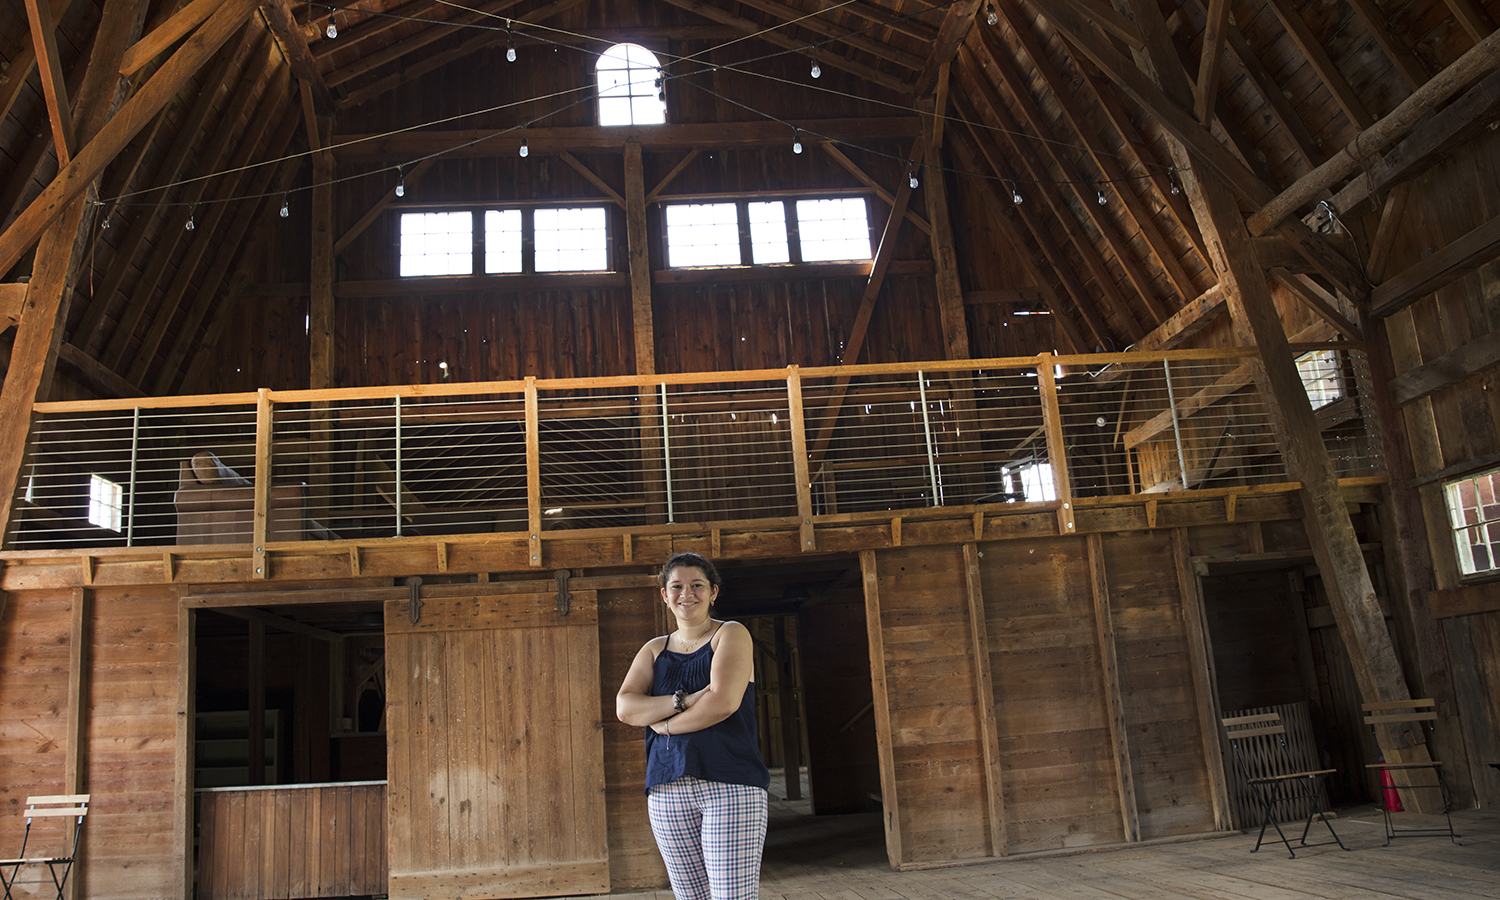 Having landed an internship with the North Farm in Geneva N.Y., Rachel Meller '21 is spending her summer executing large-scale events including weddings, special workshops, and private dinners for the venue. The facility, located on County Road 14, includes several restored barns and an organic farm.